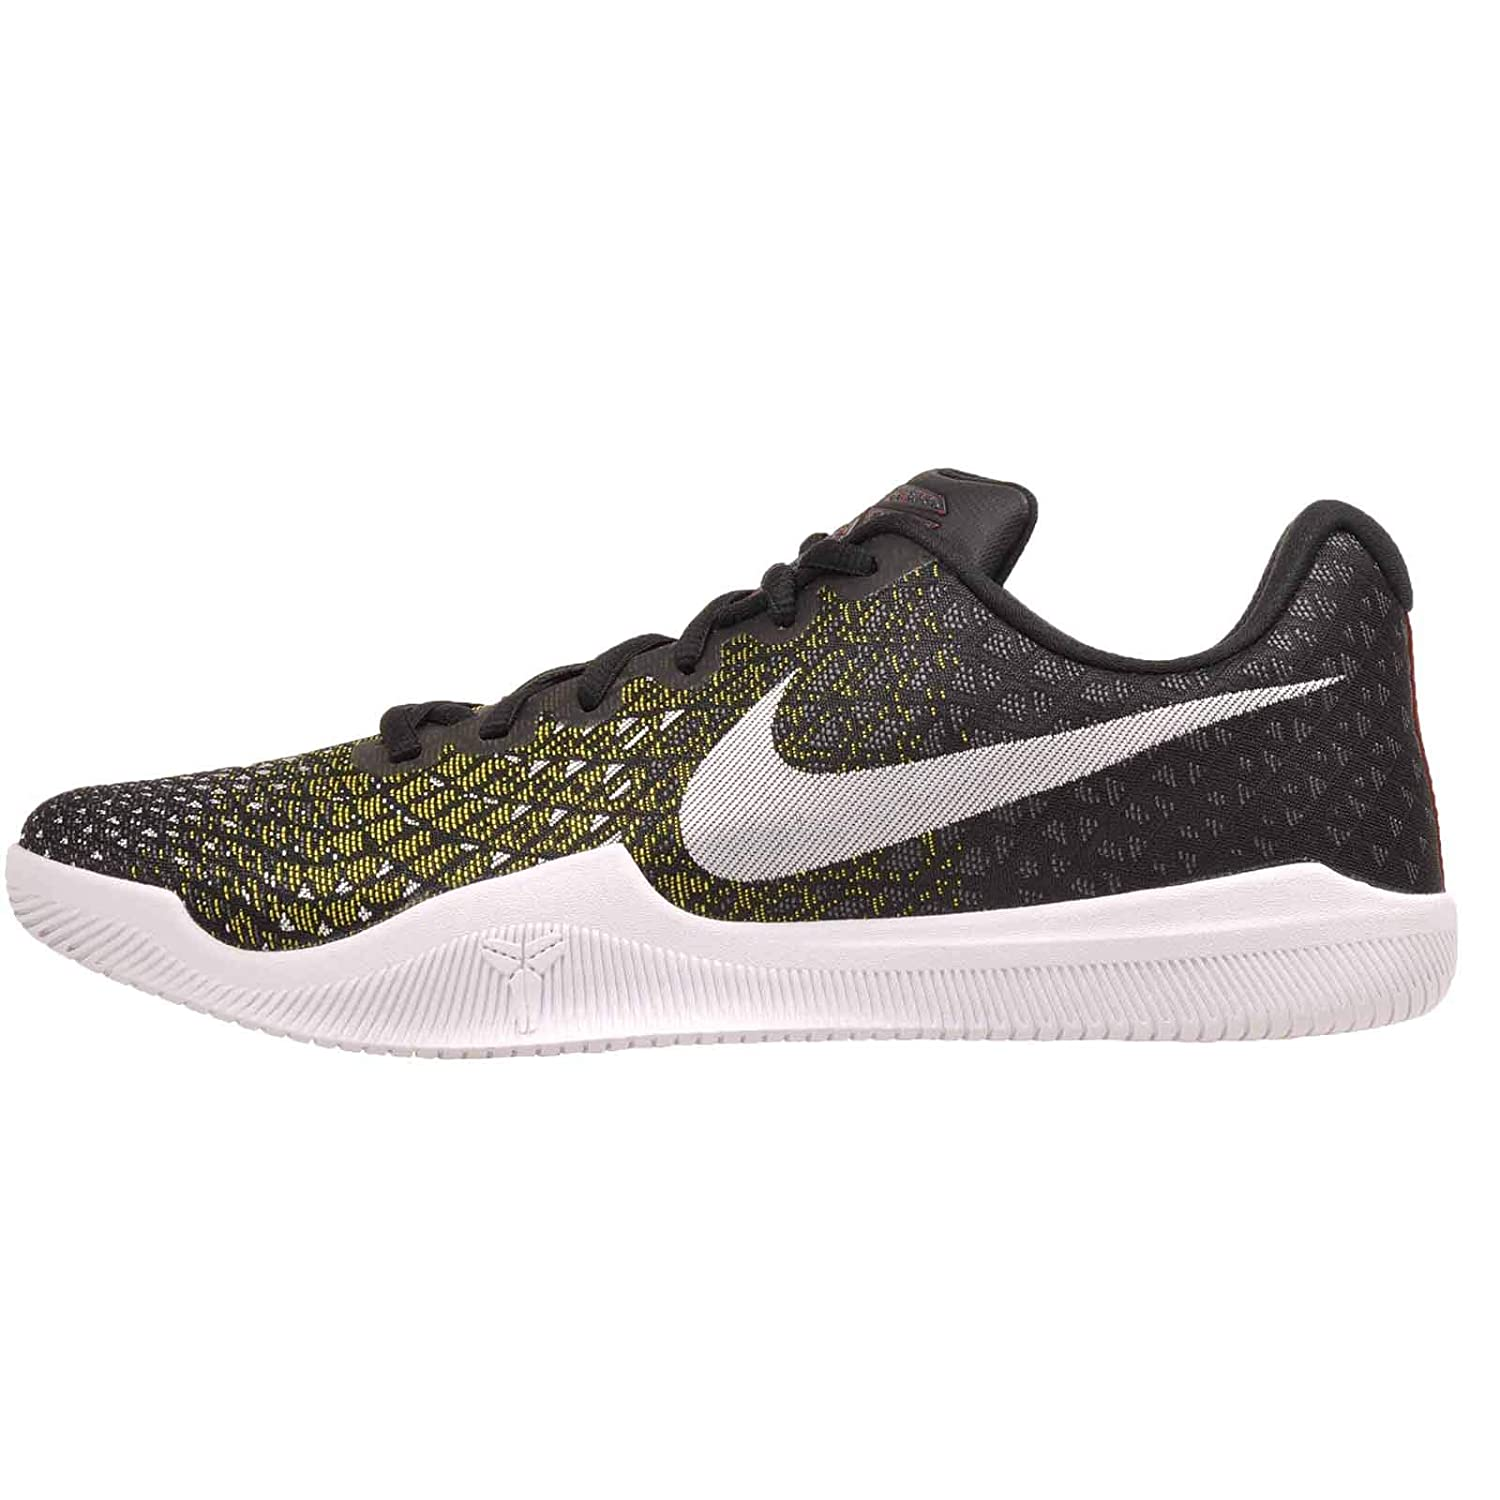 pretty nice 50bc9 14733 Nike Men s Mamba Instinct Basketball Shoes  Buy Online at Low Prices in  India - Amazon.in